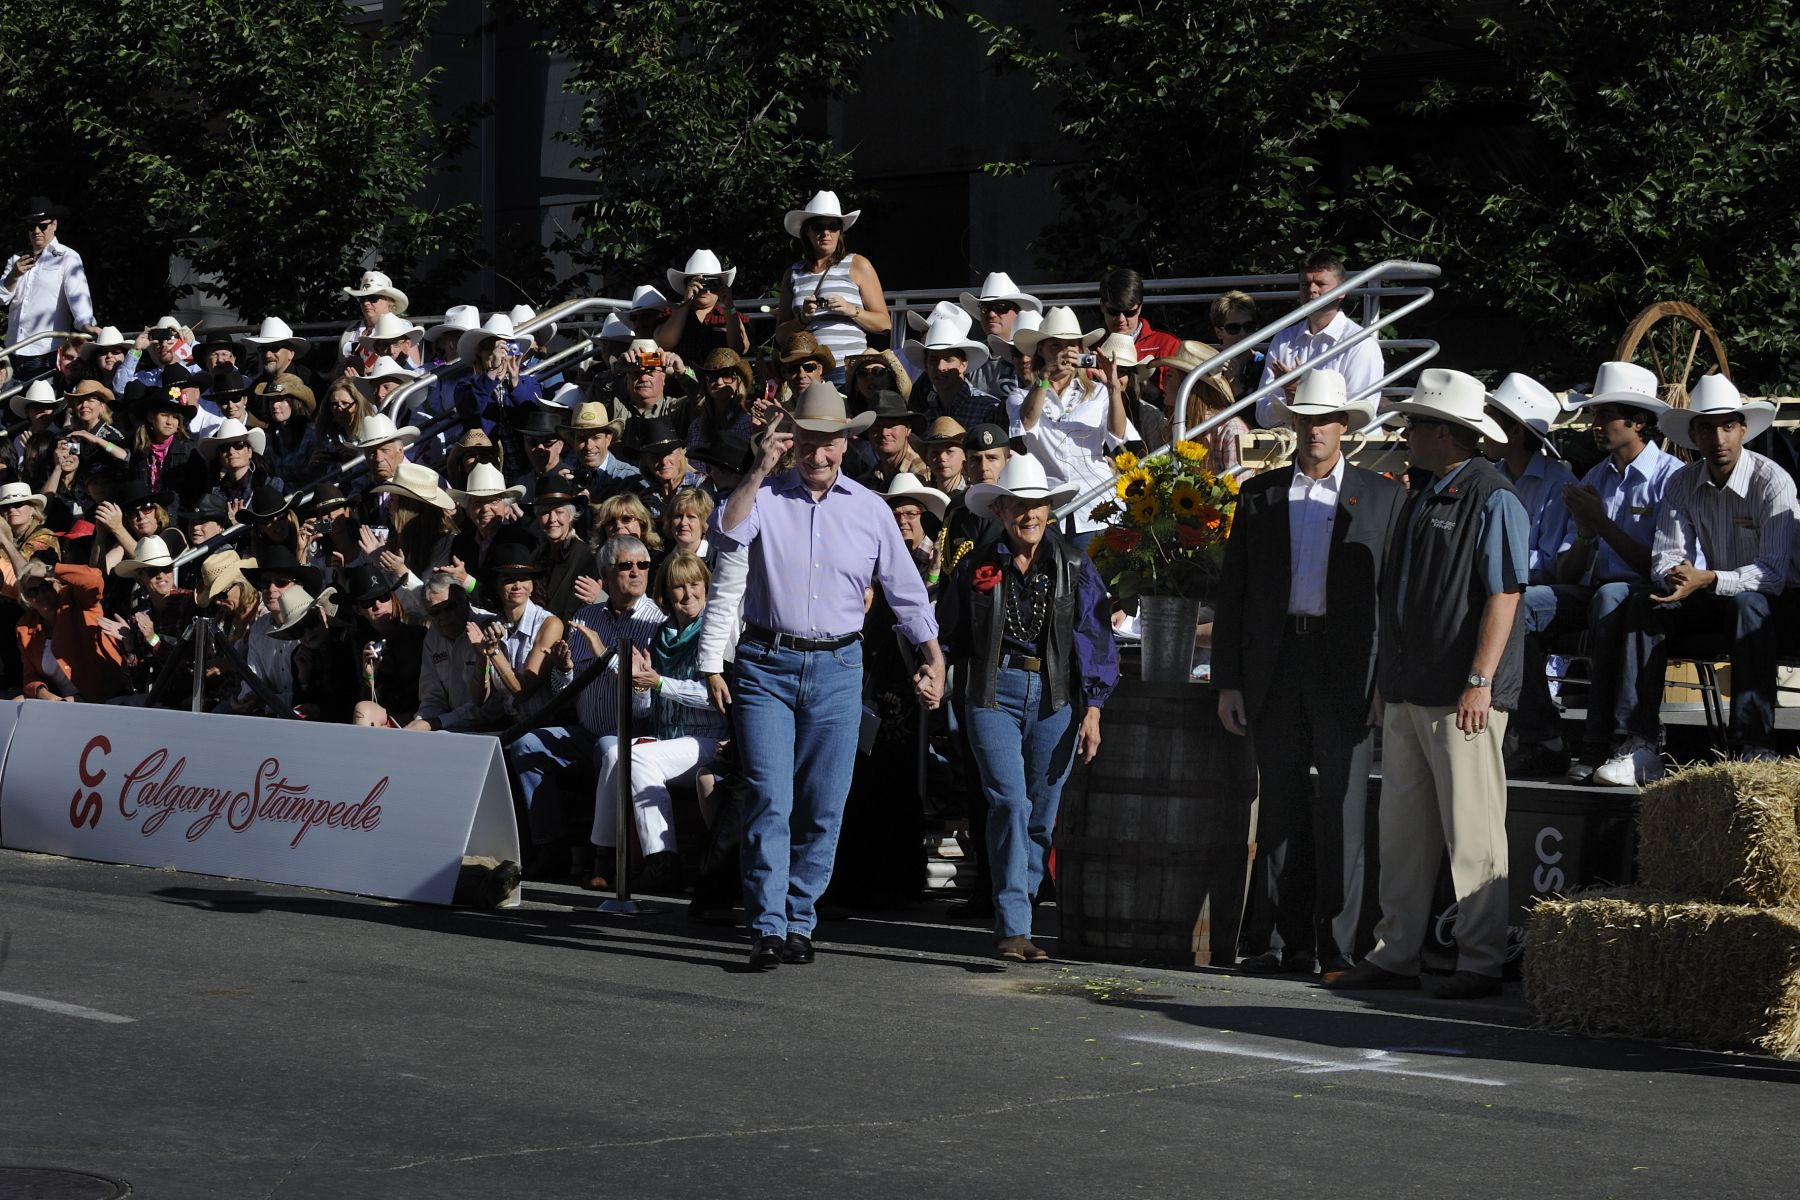 Their Excellencies the Right Honourable David Johnston, Governor General of Canada, and Mrs. Sharon Johnston attended the opening parade of the Calgary Stampede.